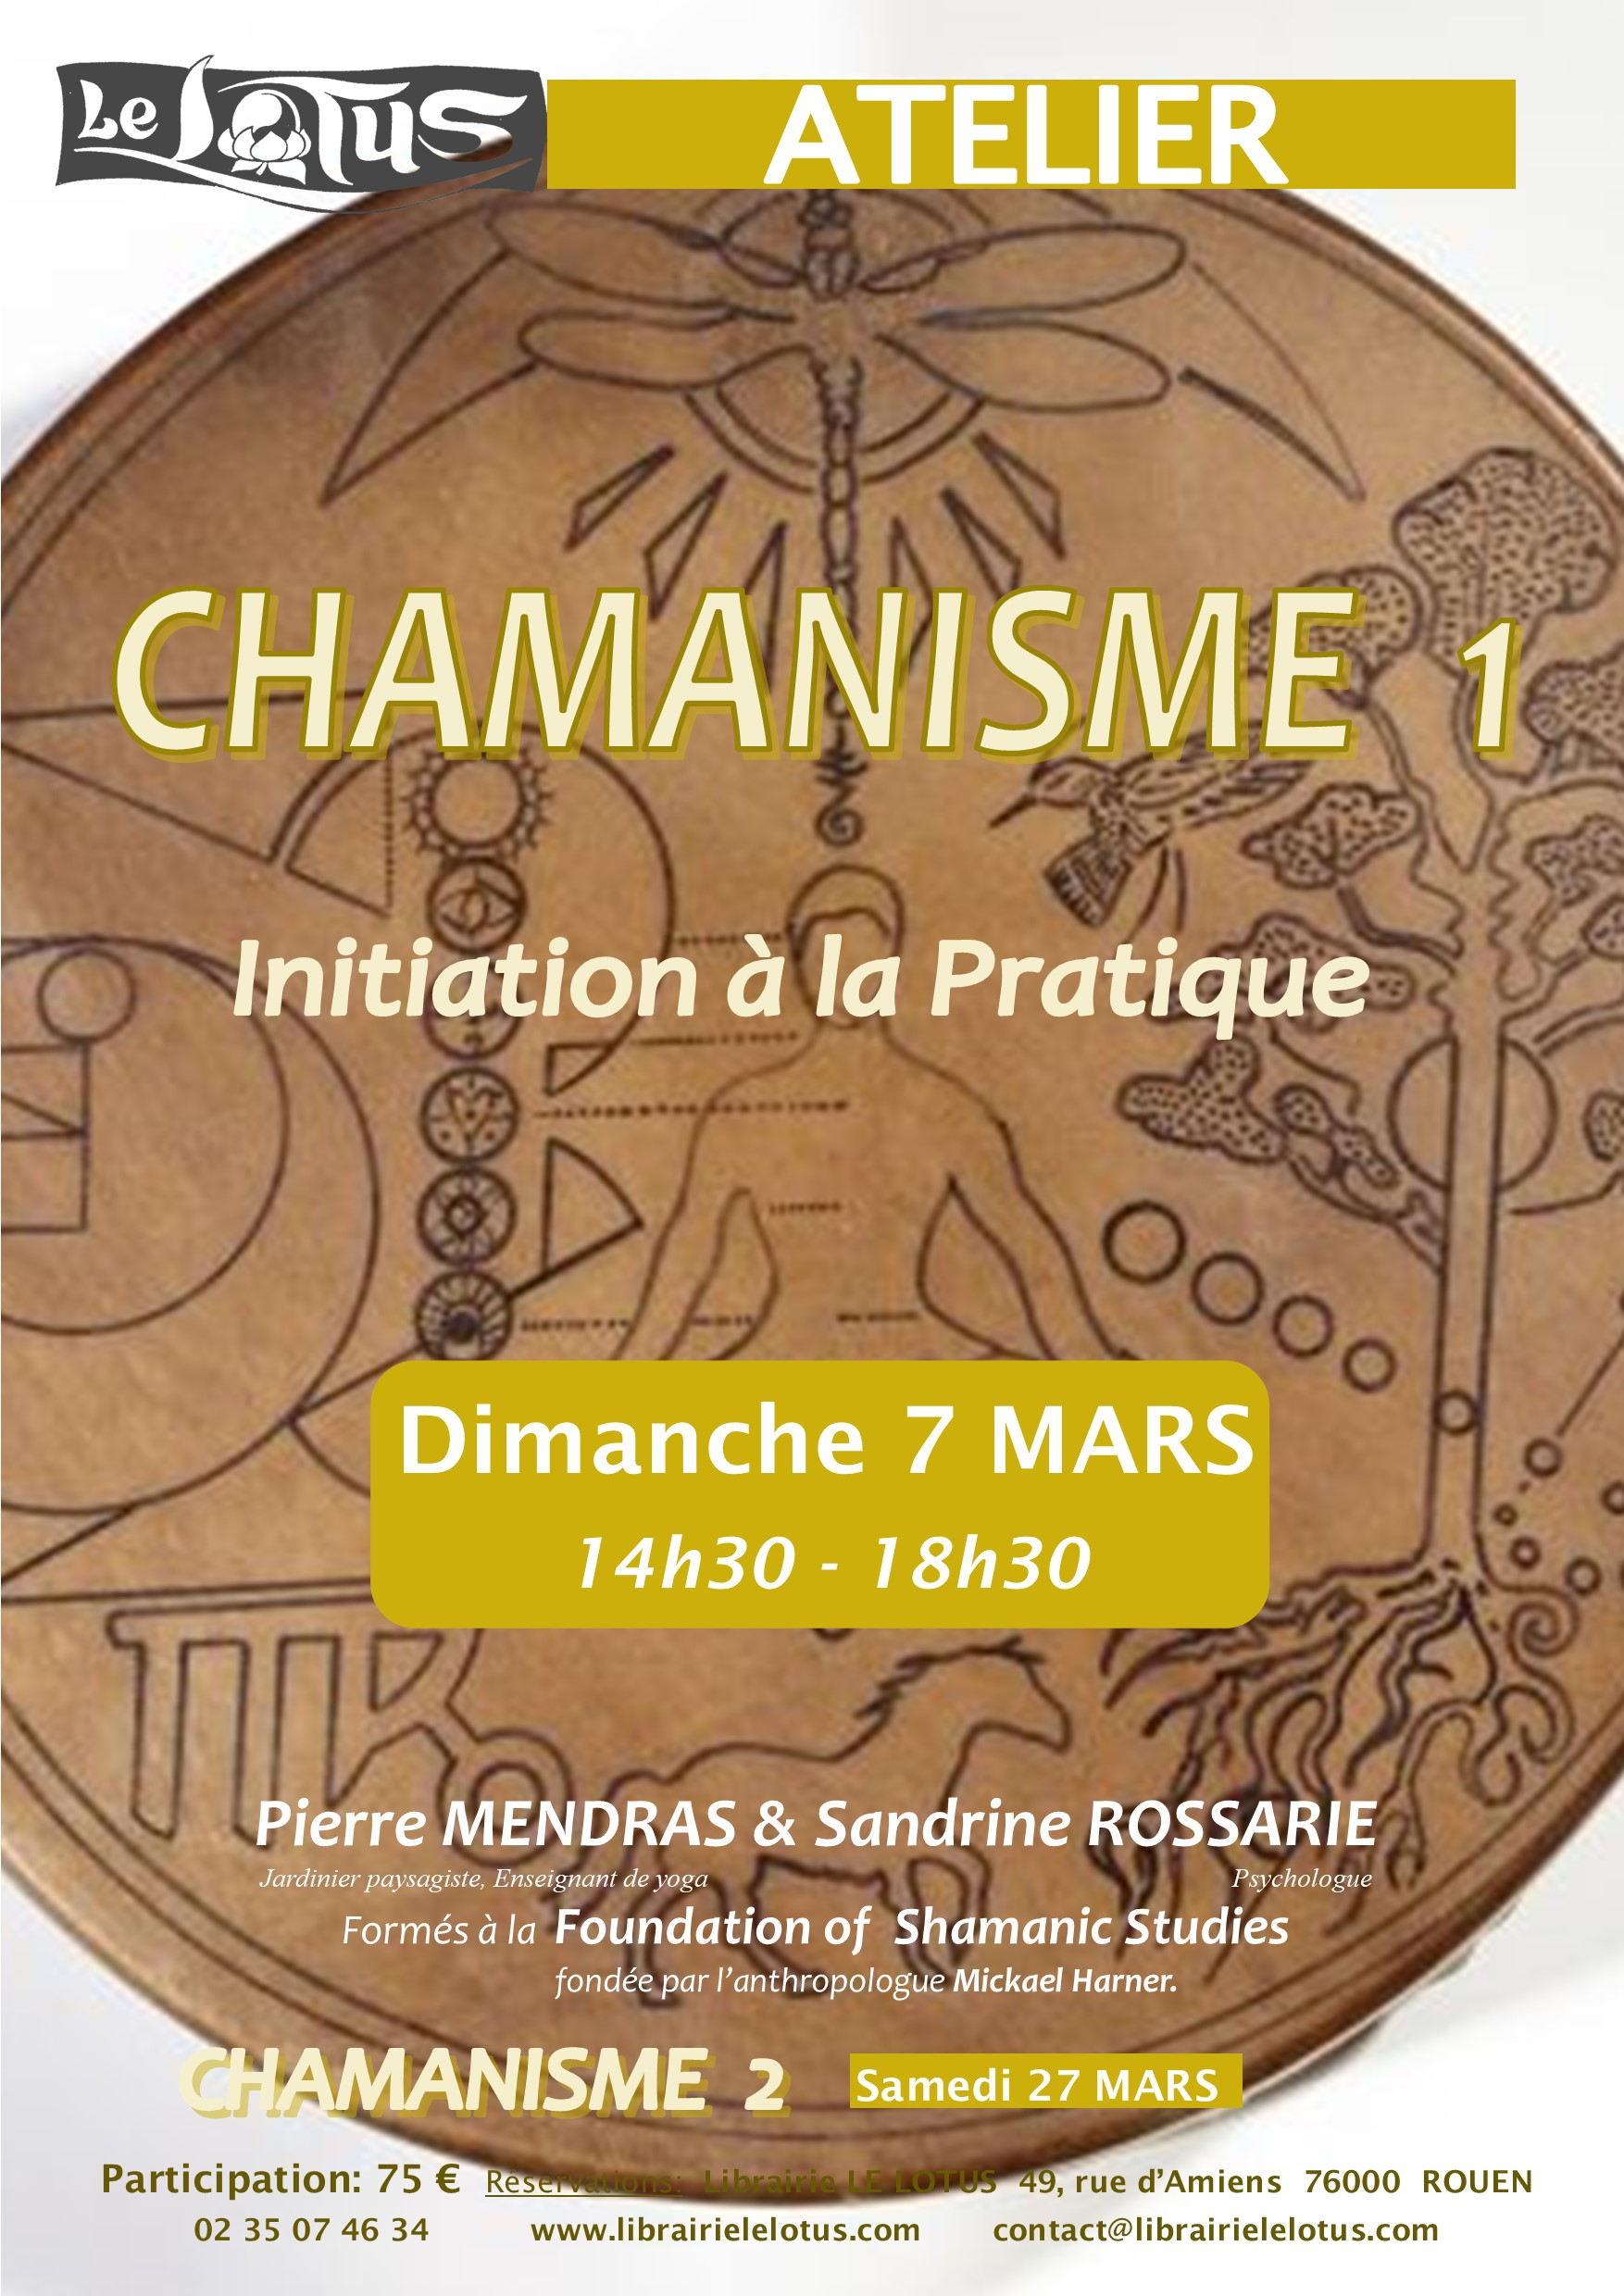 ATELIER - CHAMANISME 1 - INITIATION